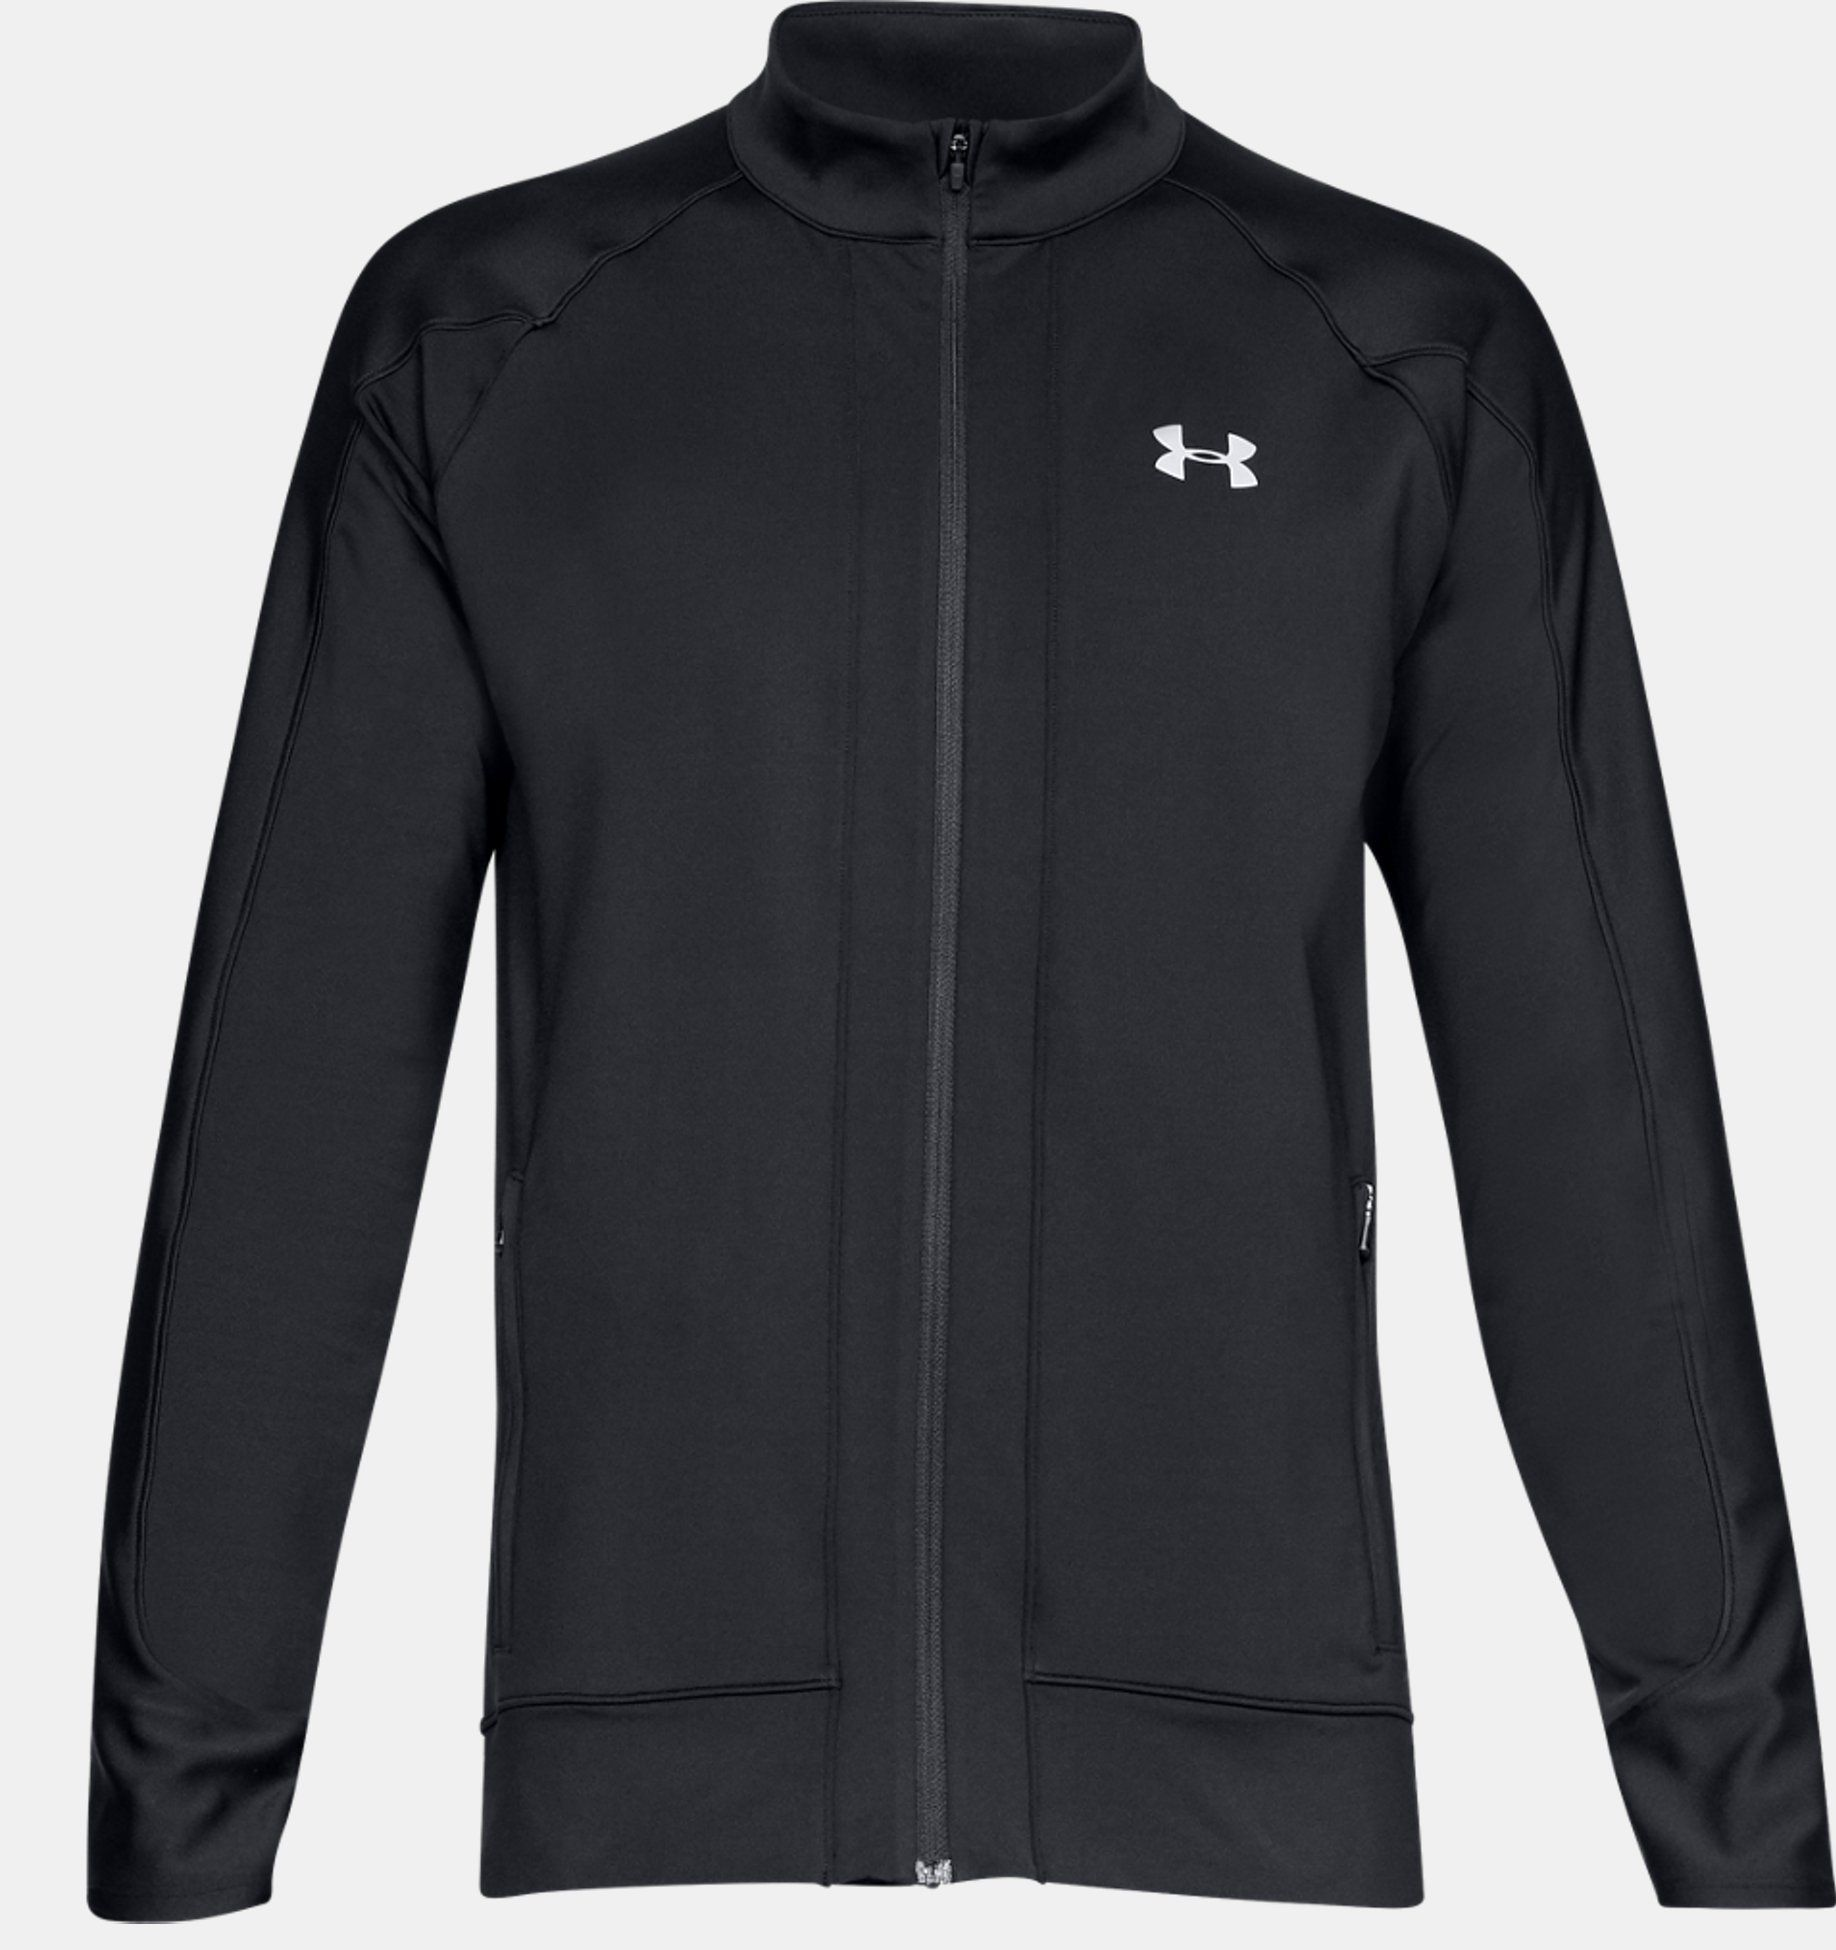 intencional Tomar un riesgo Empuje hacia abajo  The best running kit for men and women in the Under Armour sale